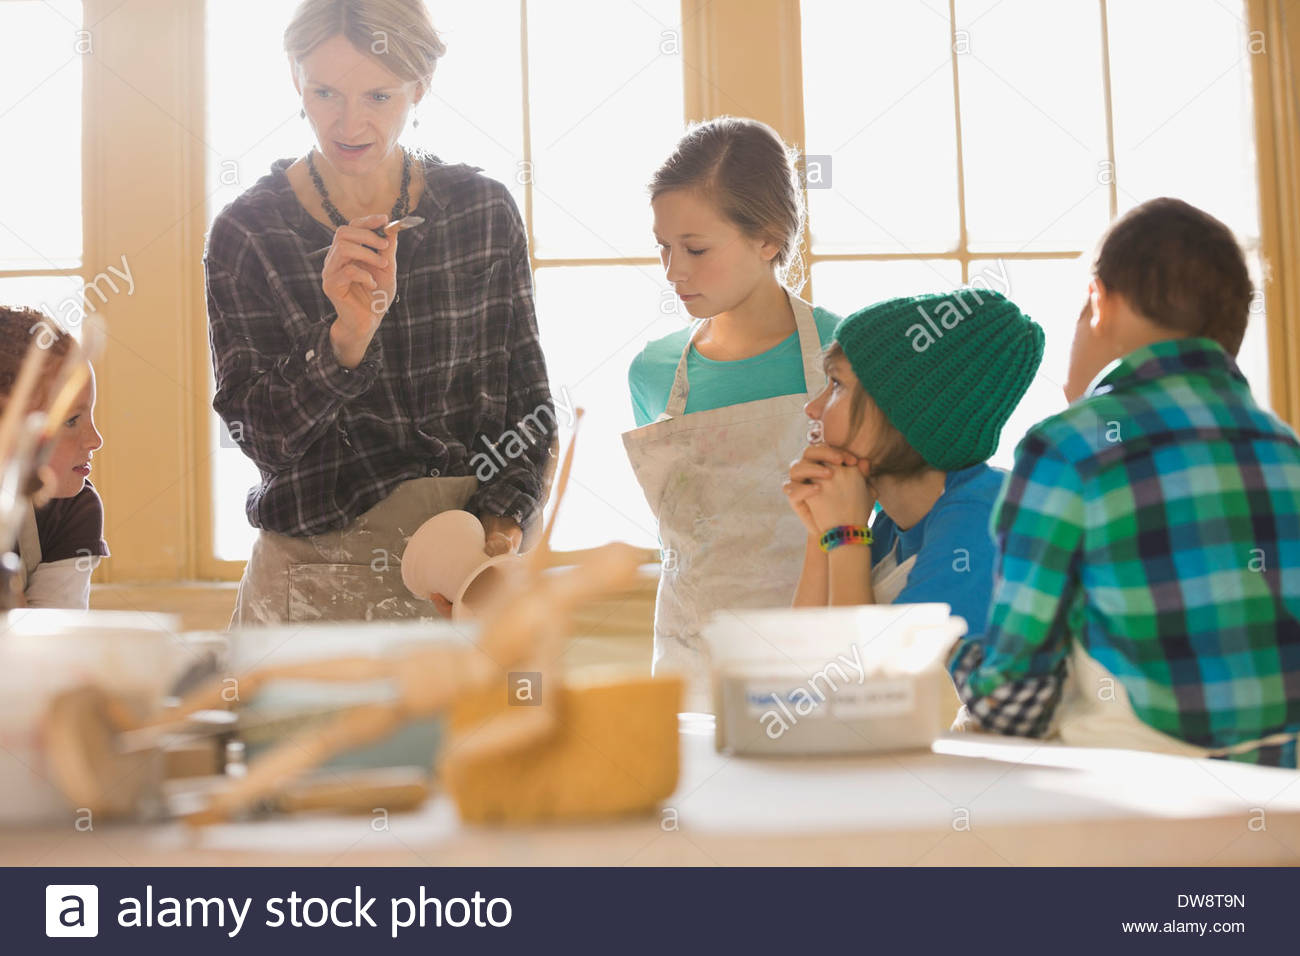 Teacher explaining glazing techniques to students in art class - Stock Image